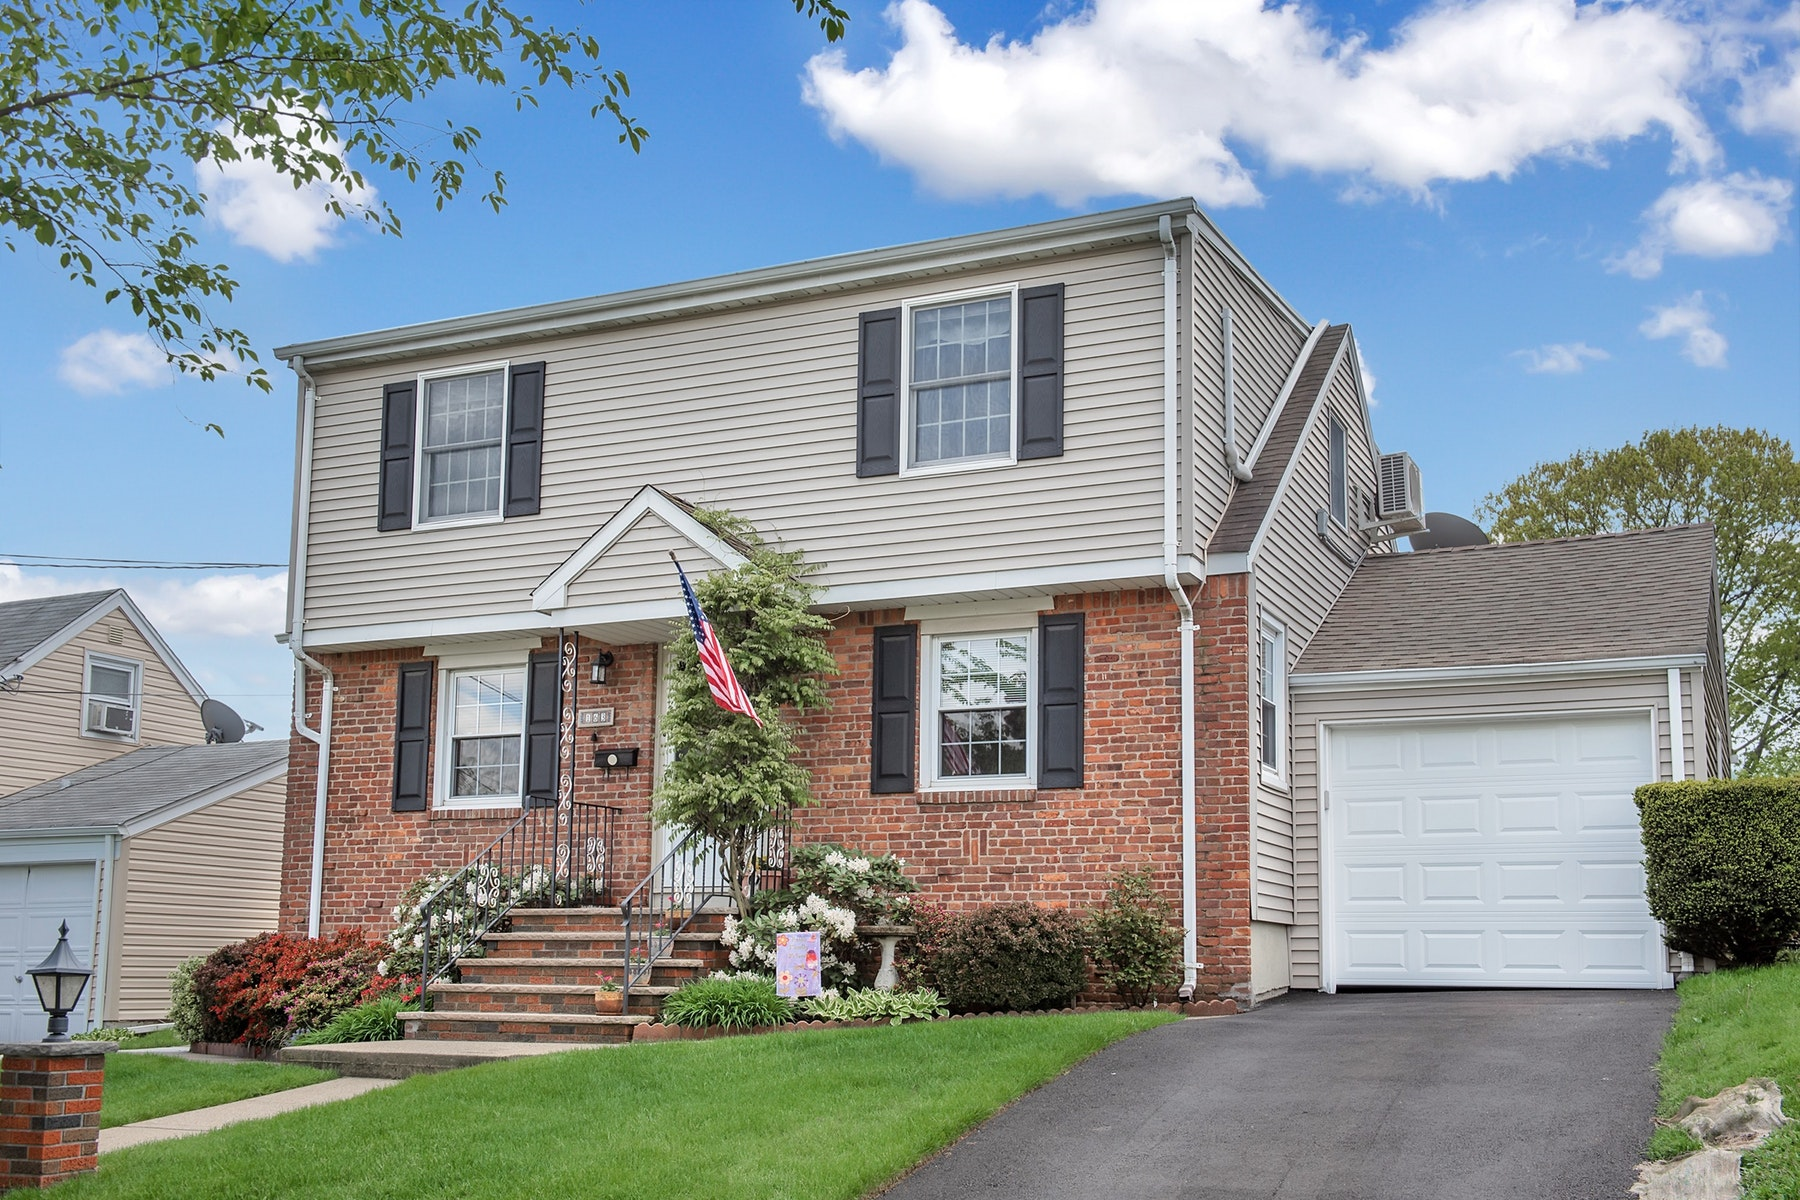 Single Family Homes for Sale at Picture Perfect Cape Cod 163 Lockwood Drive Clifton, New Jersey 07013 United States